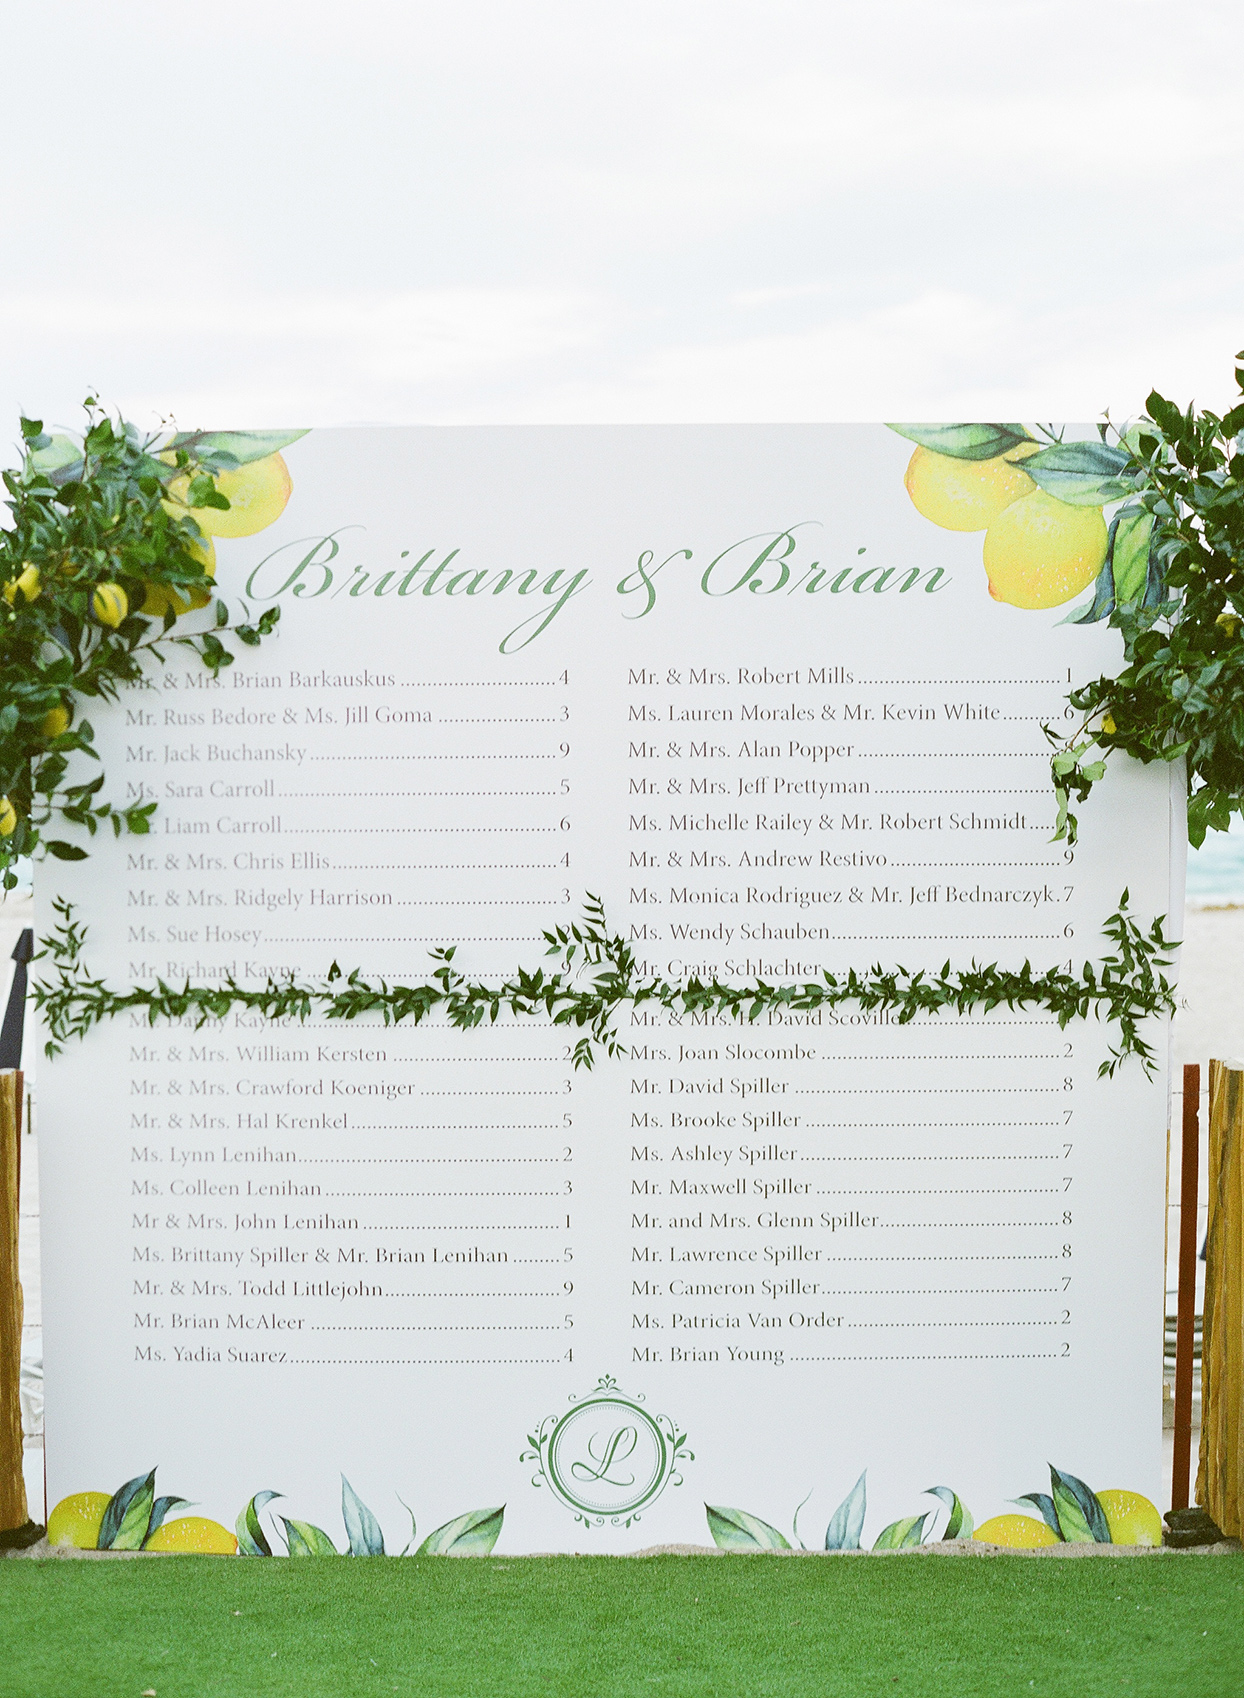 brittany brian wedding large white seating chart board with citrus and greenery decor